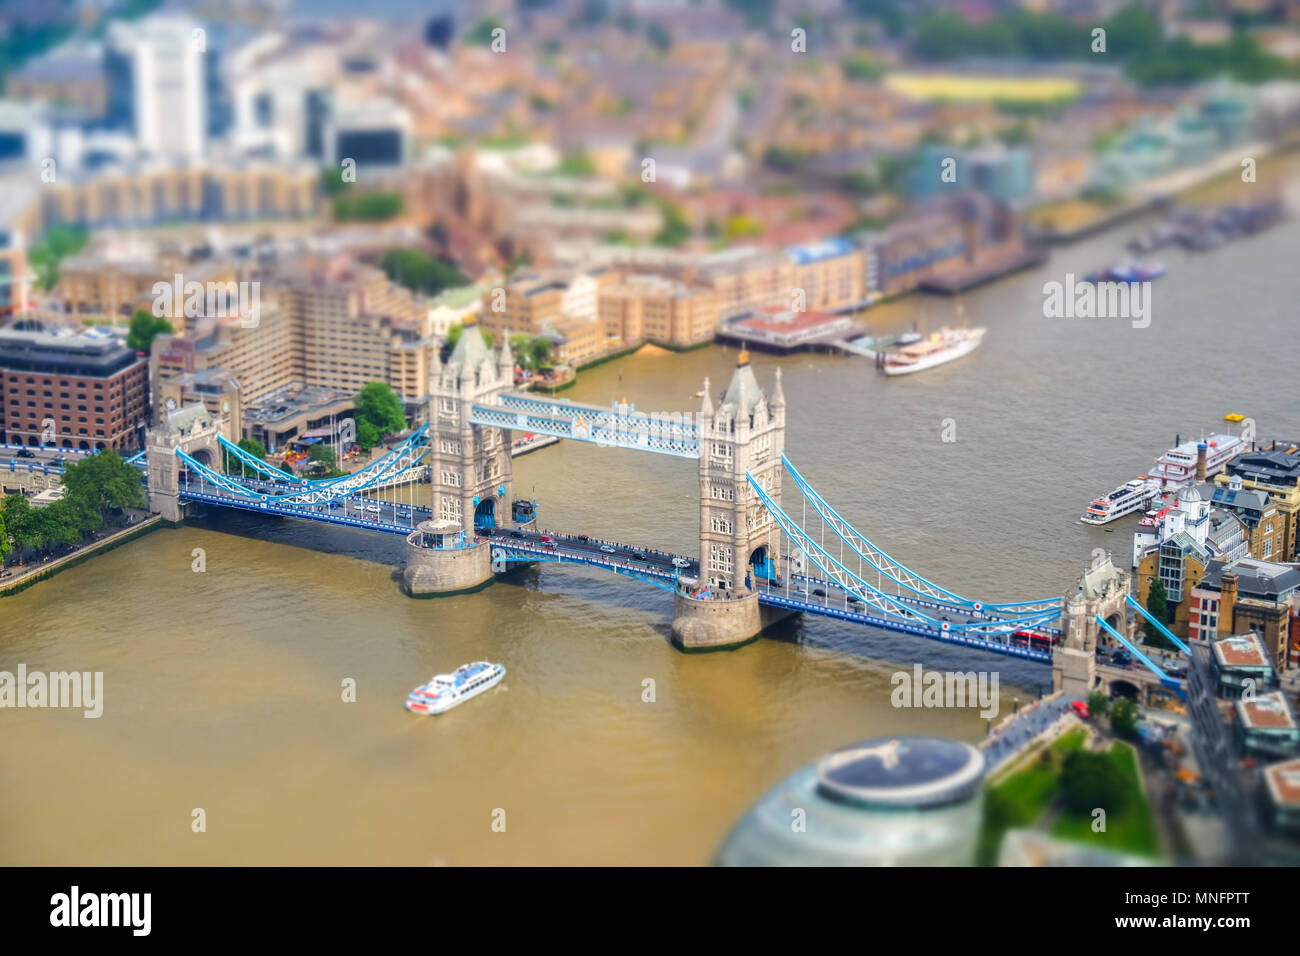 London Tower bridge seen from above. Tilt-shift effect applied. - Stock Image